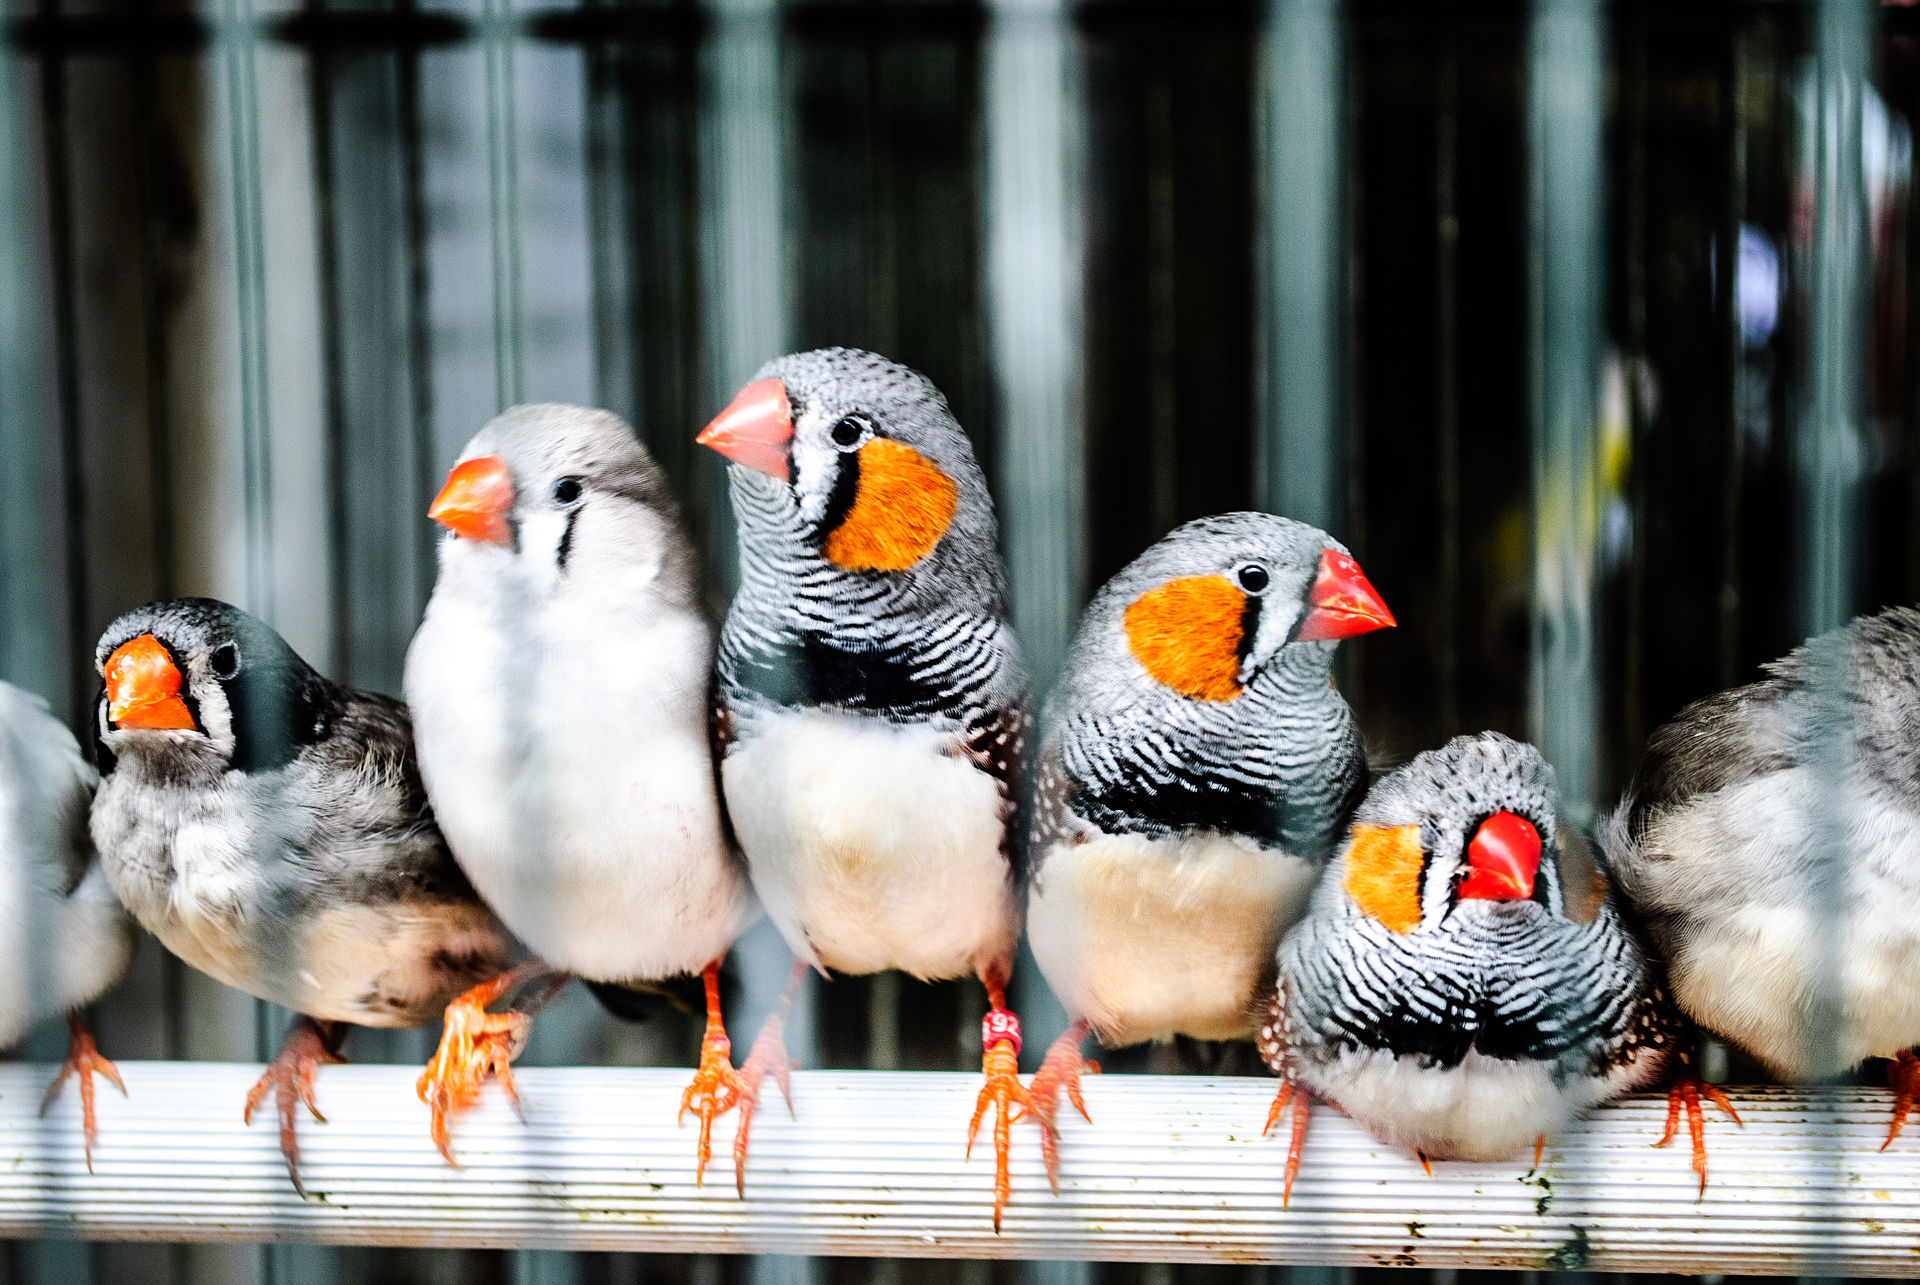 zebra finches in a cage.jpg